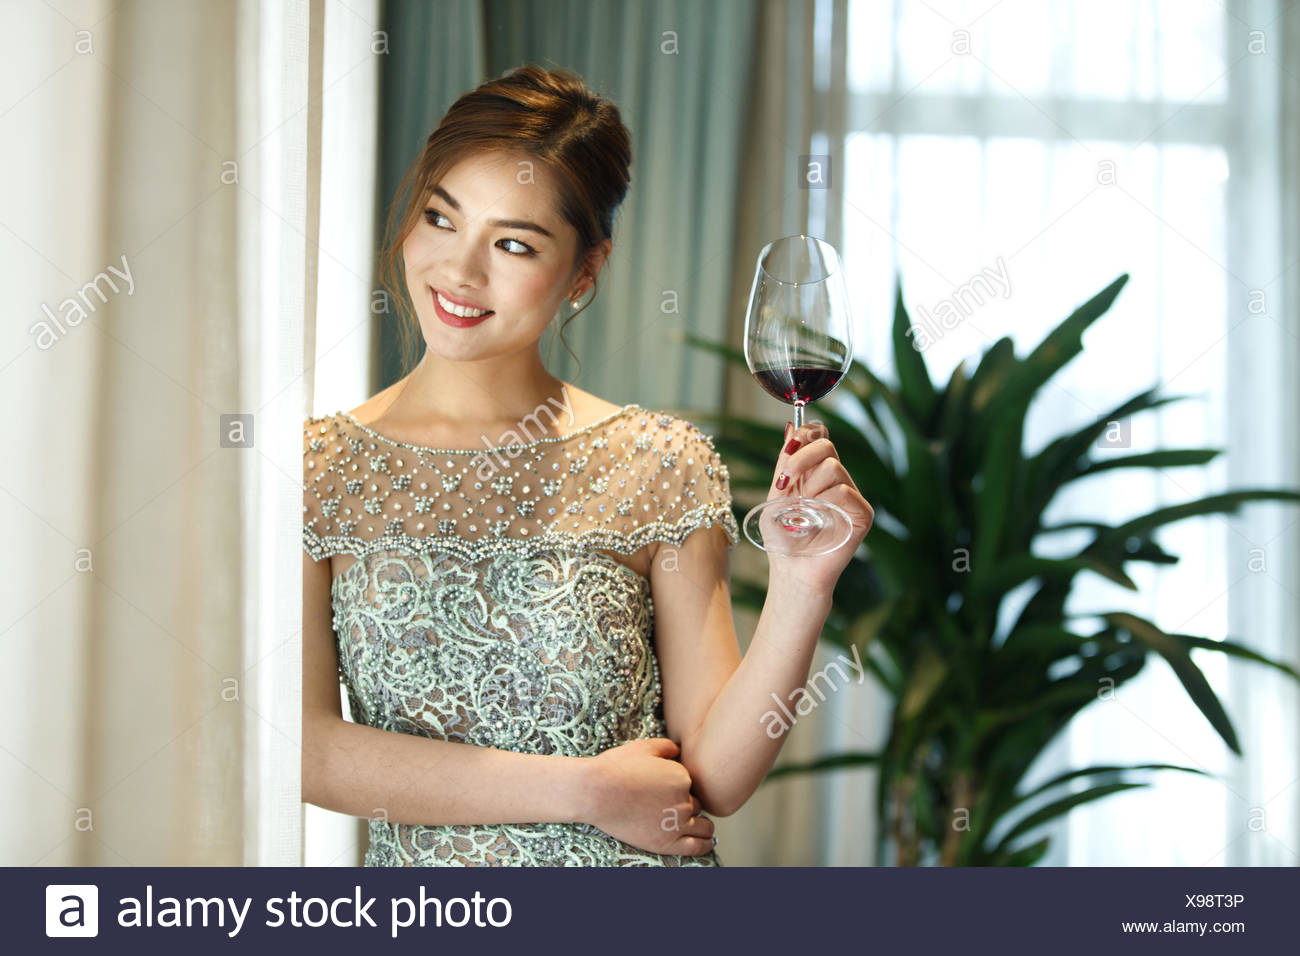 A beautiful young woman holding goblet - Stock Image